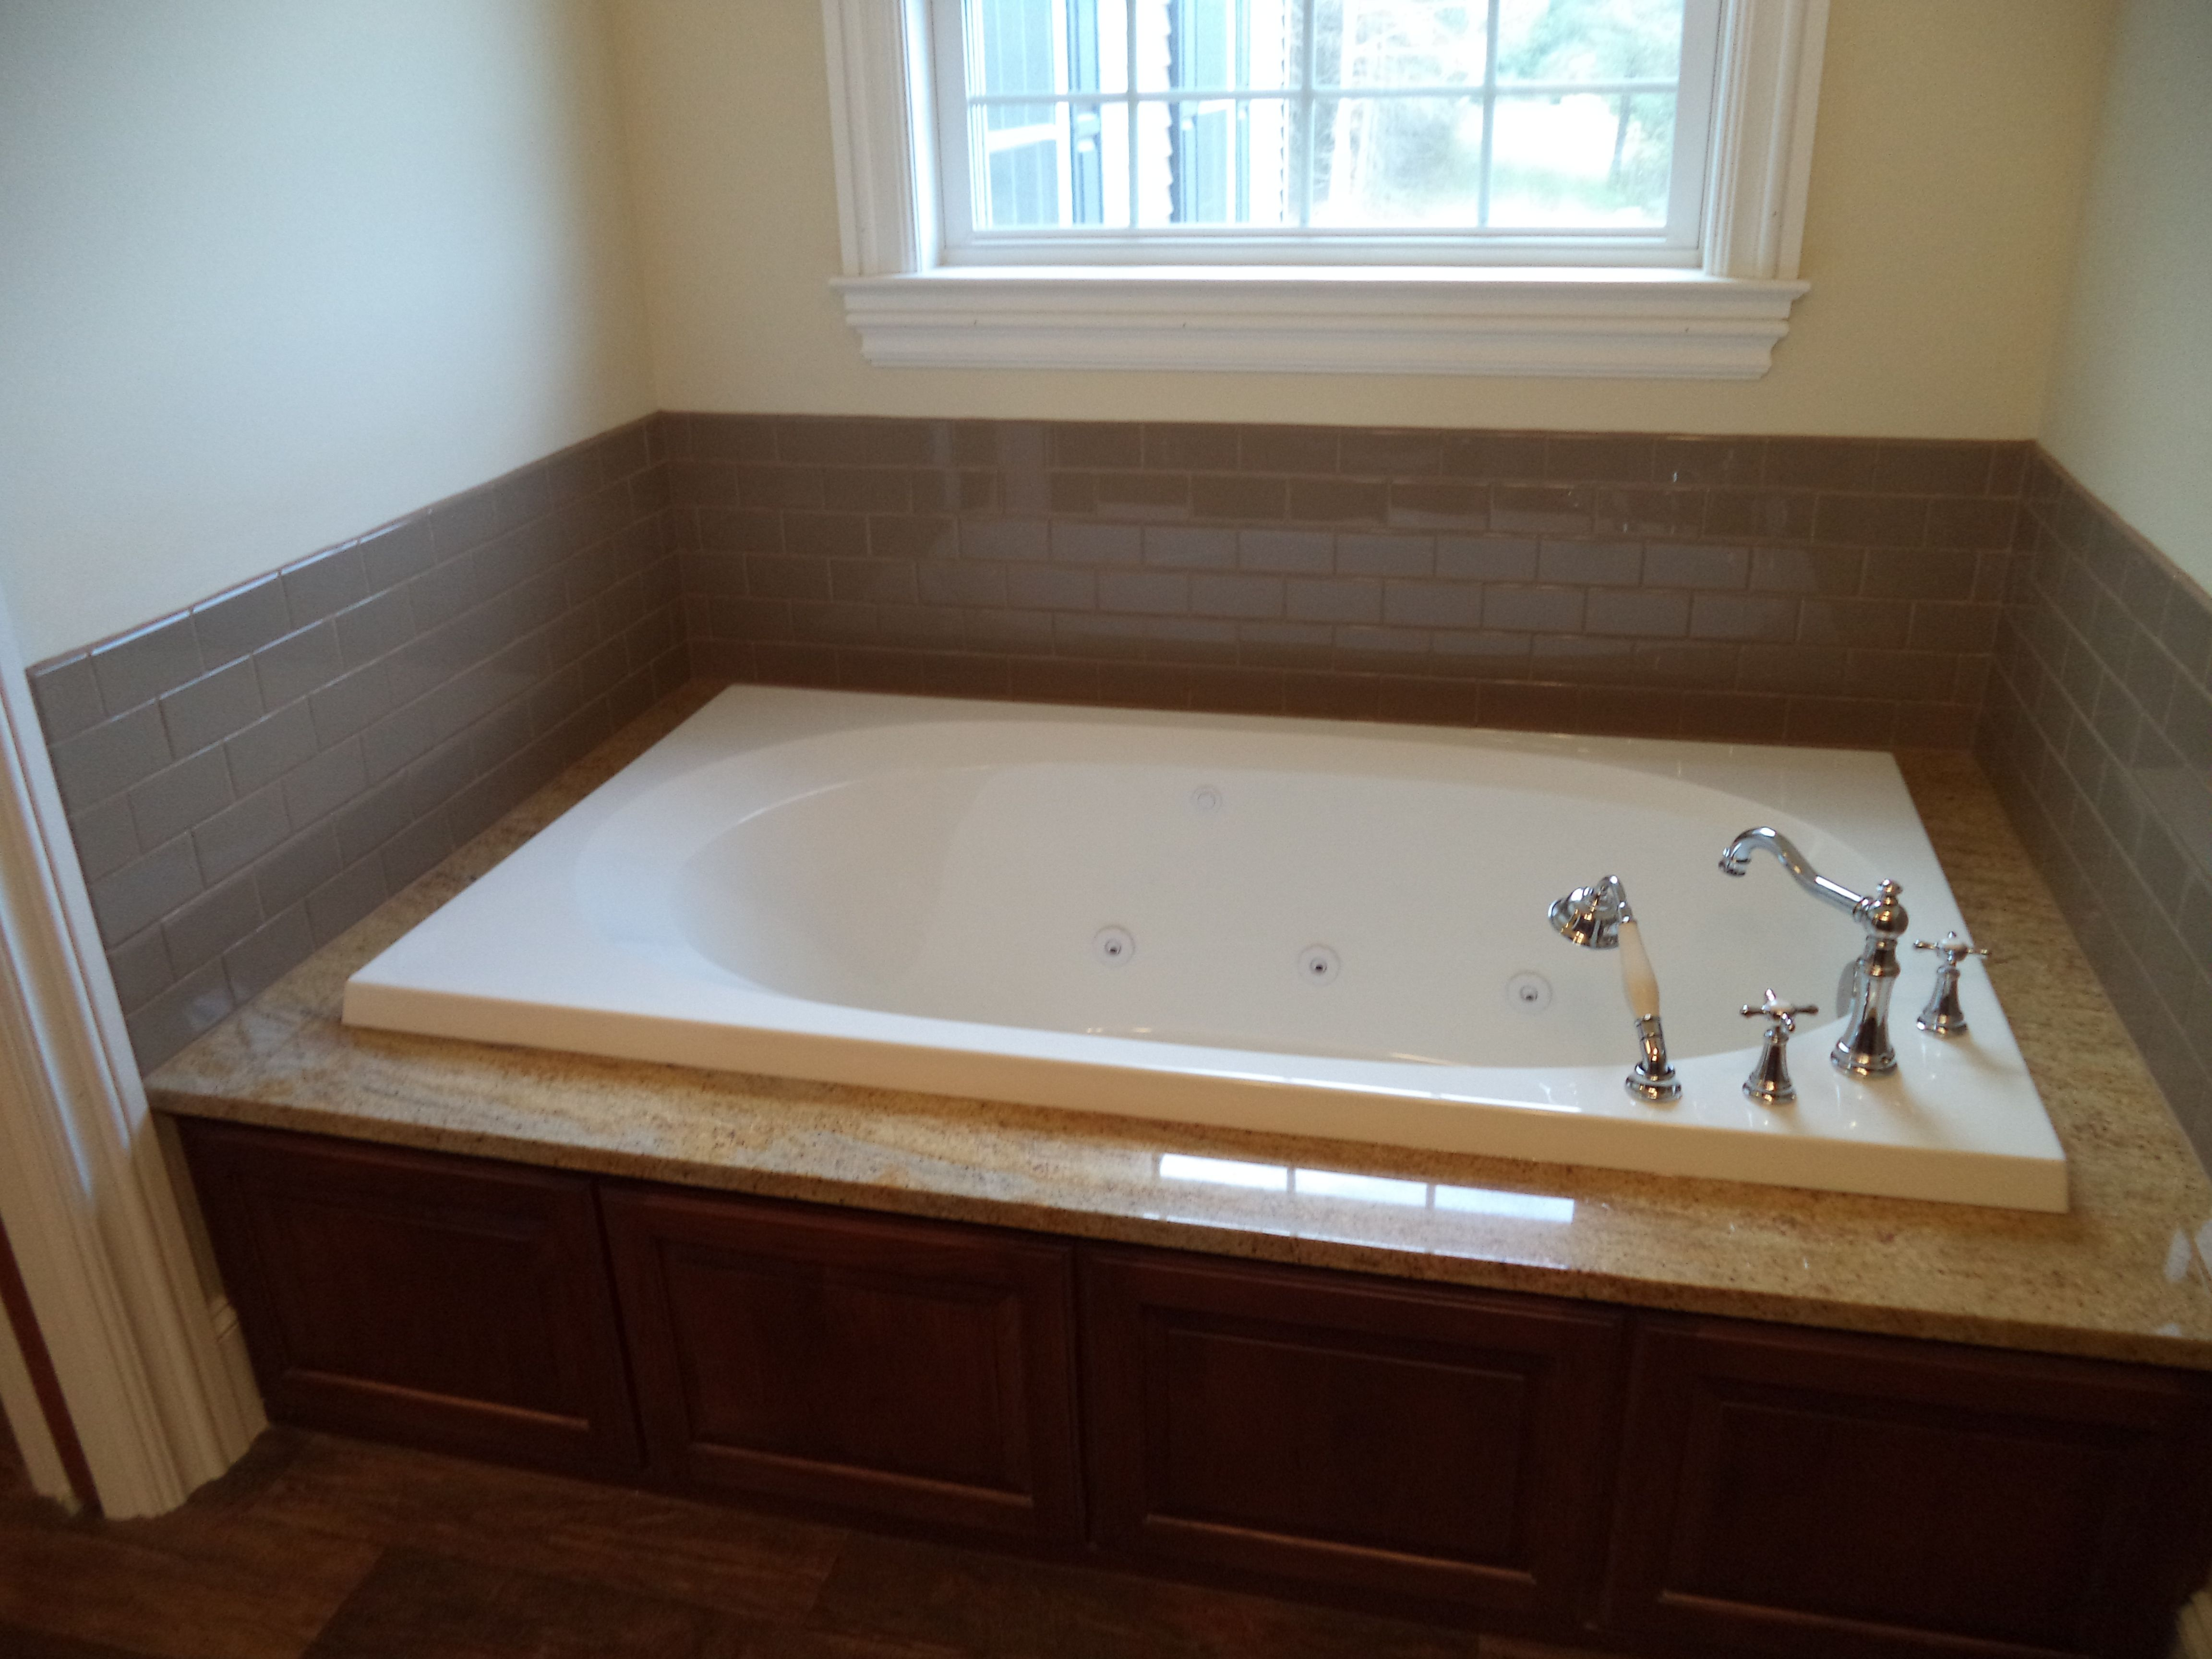 Whirlpool Tub With Gold Granite Deck Ceramic Tile Surround Wooden Access Panel And Moen Weymouth Hardware 15 88